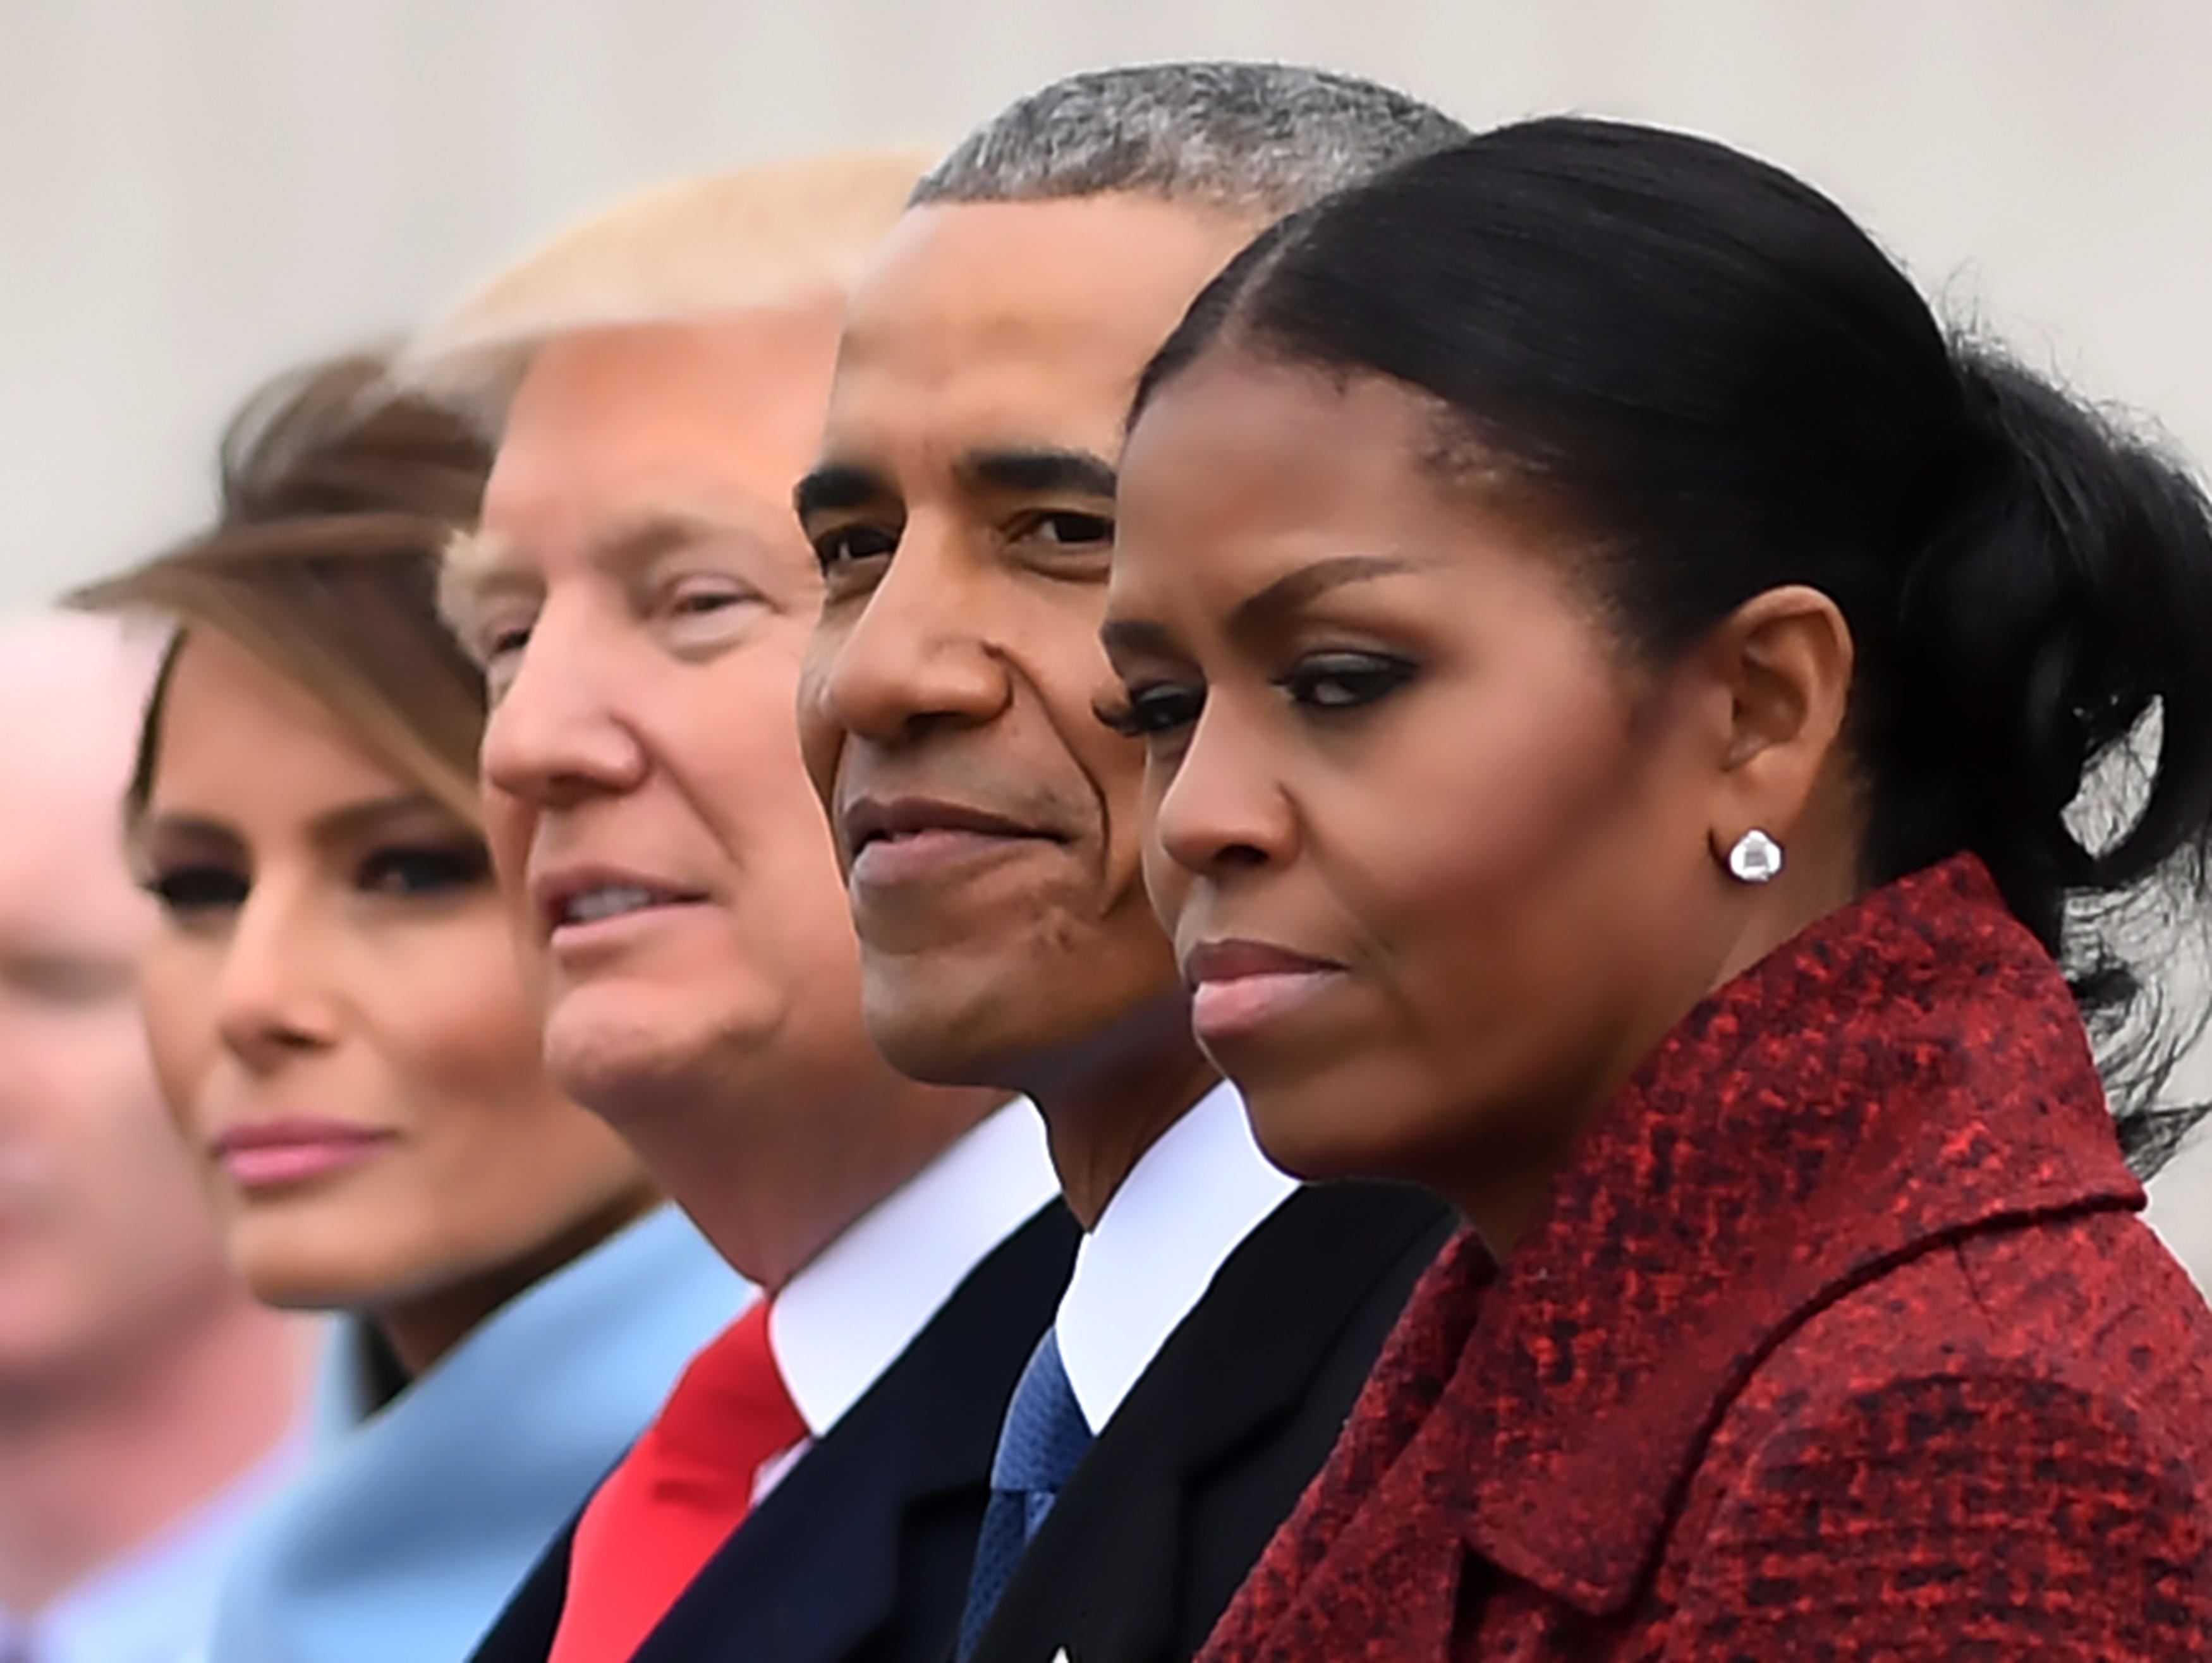 Michelle Obama Ill Never Forgive Trump For Birther Conspiracy Theory